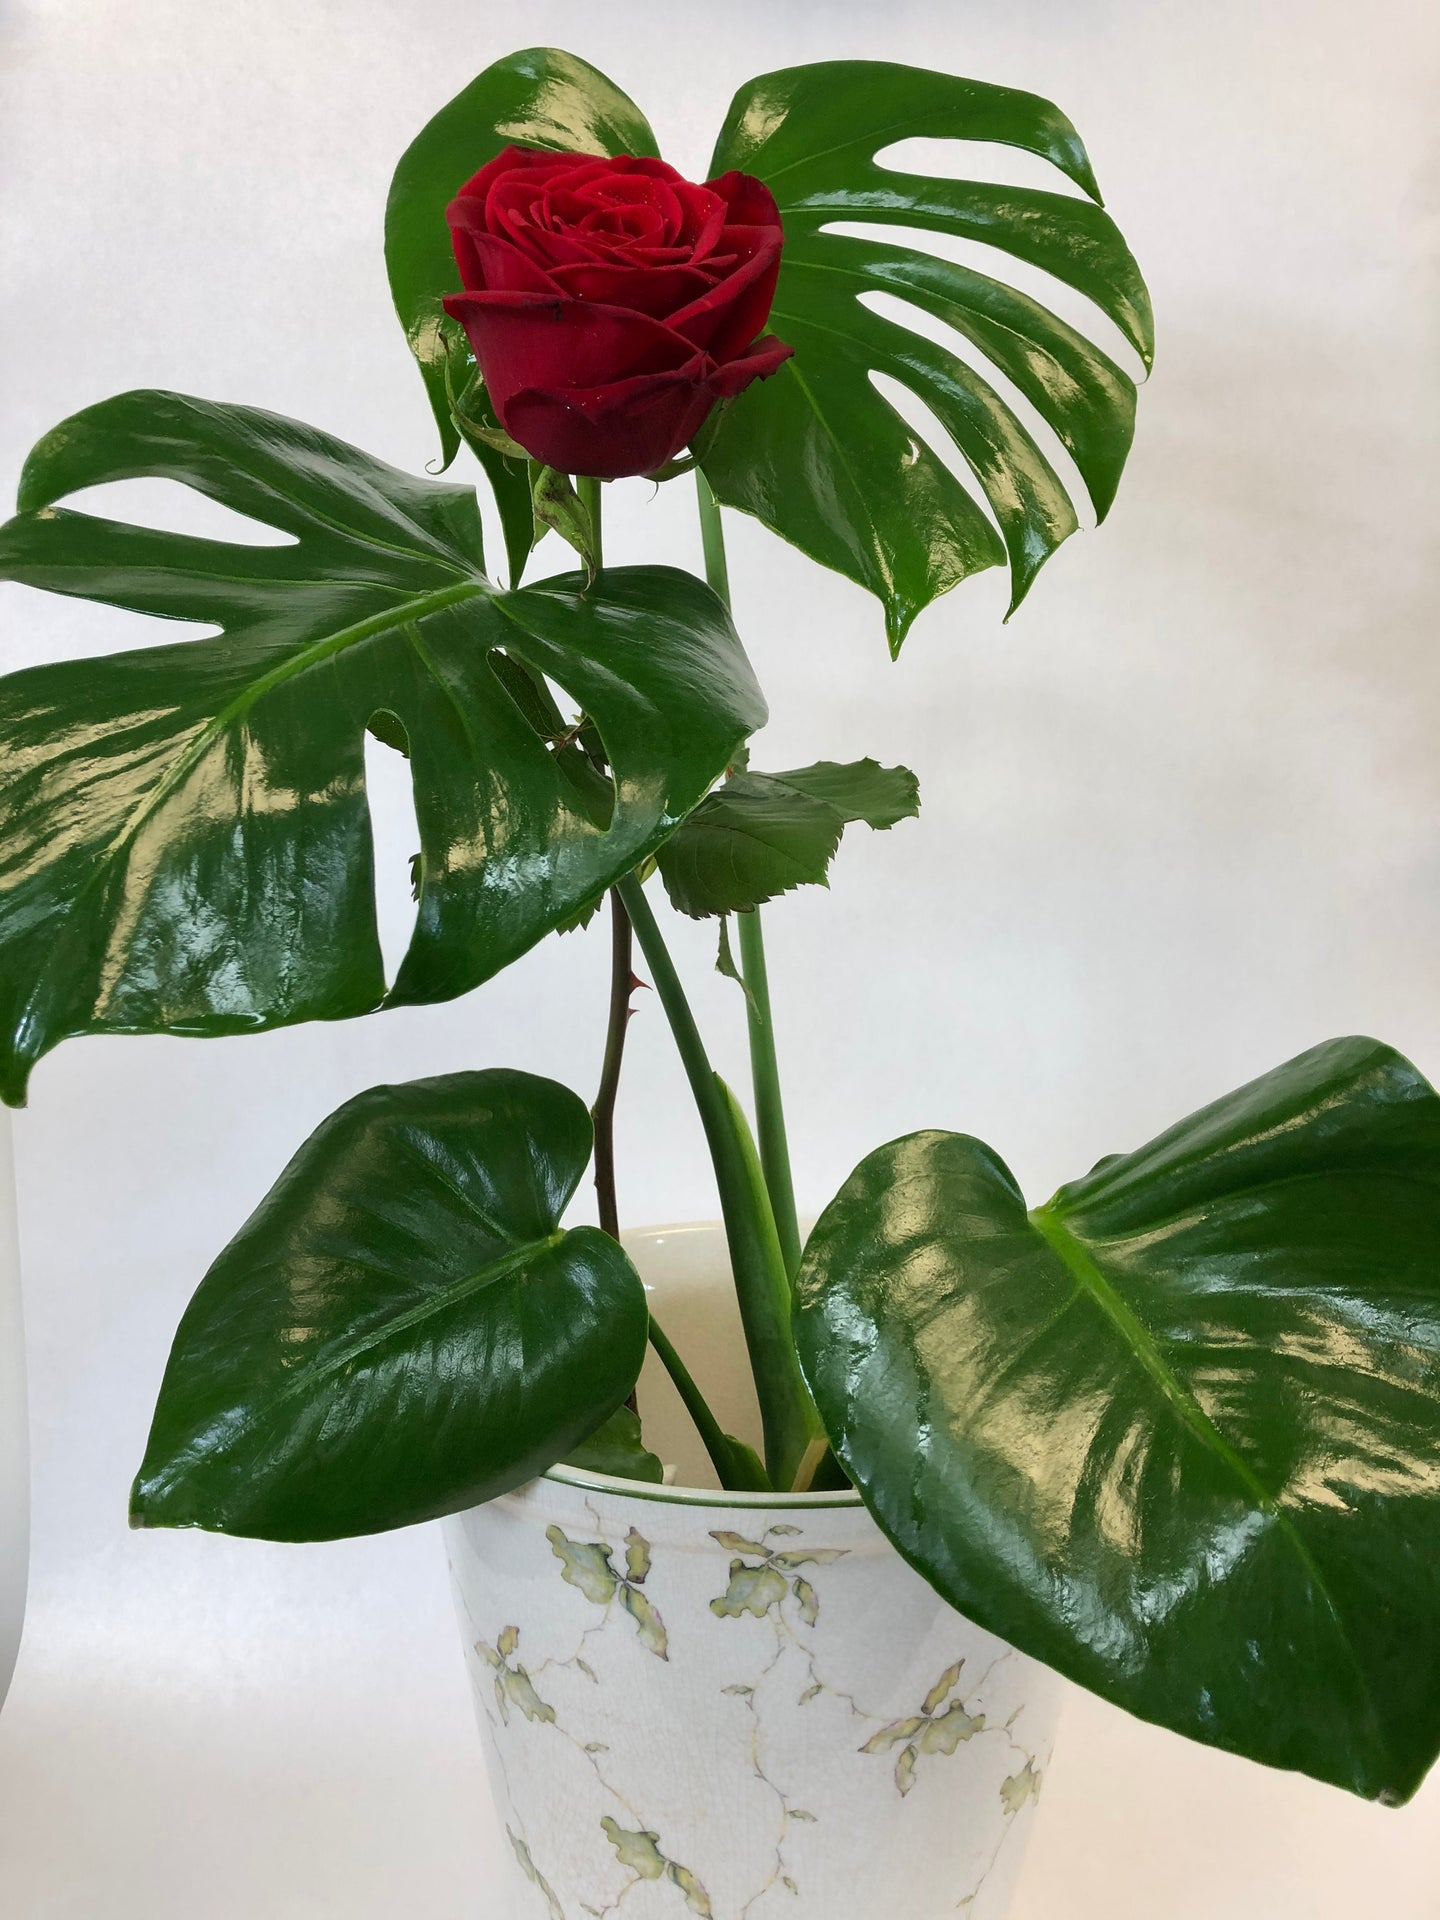 Monstera with red rose